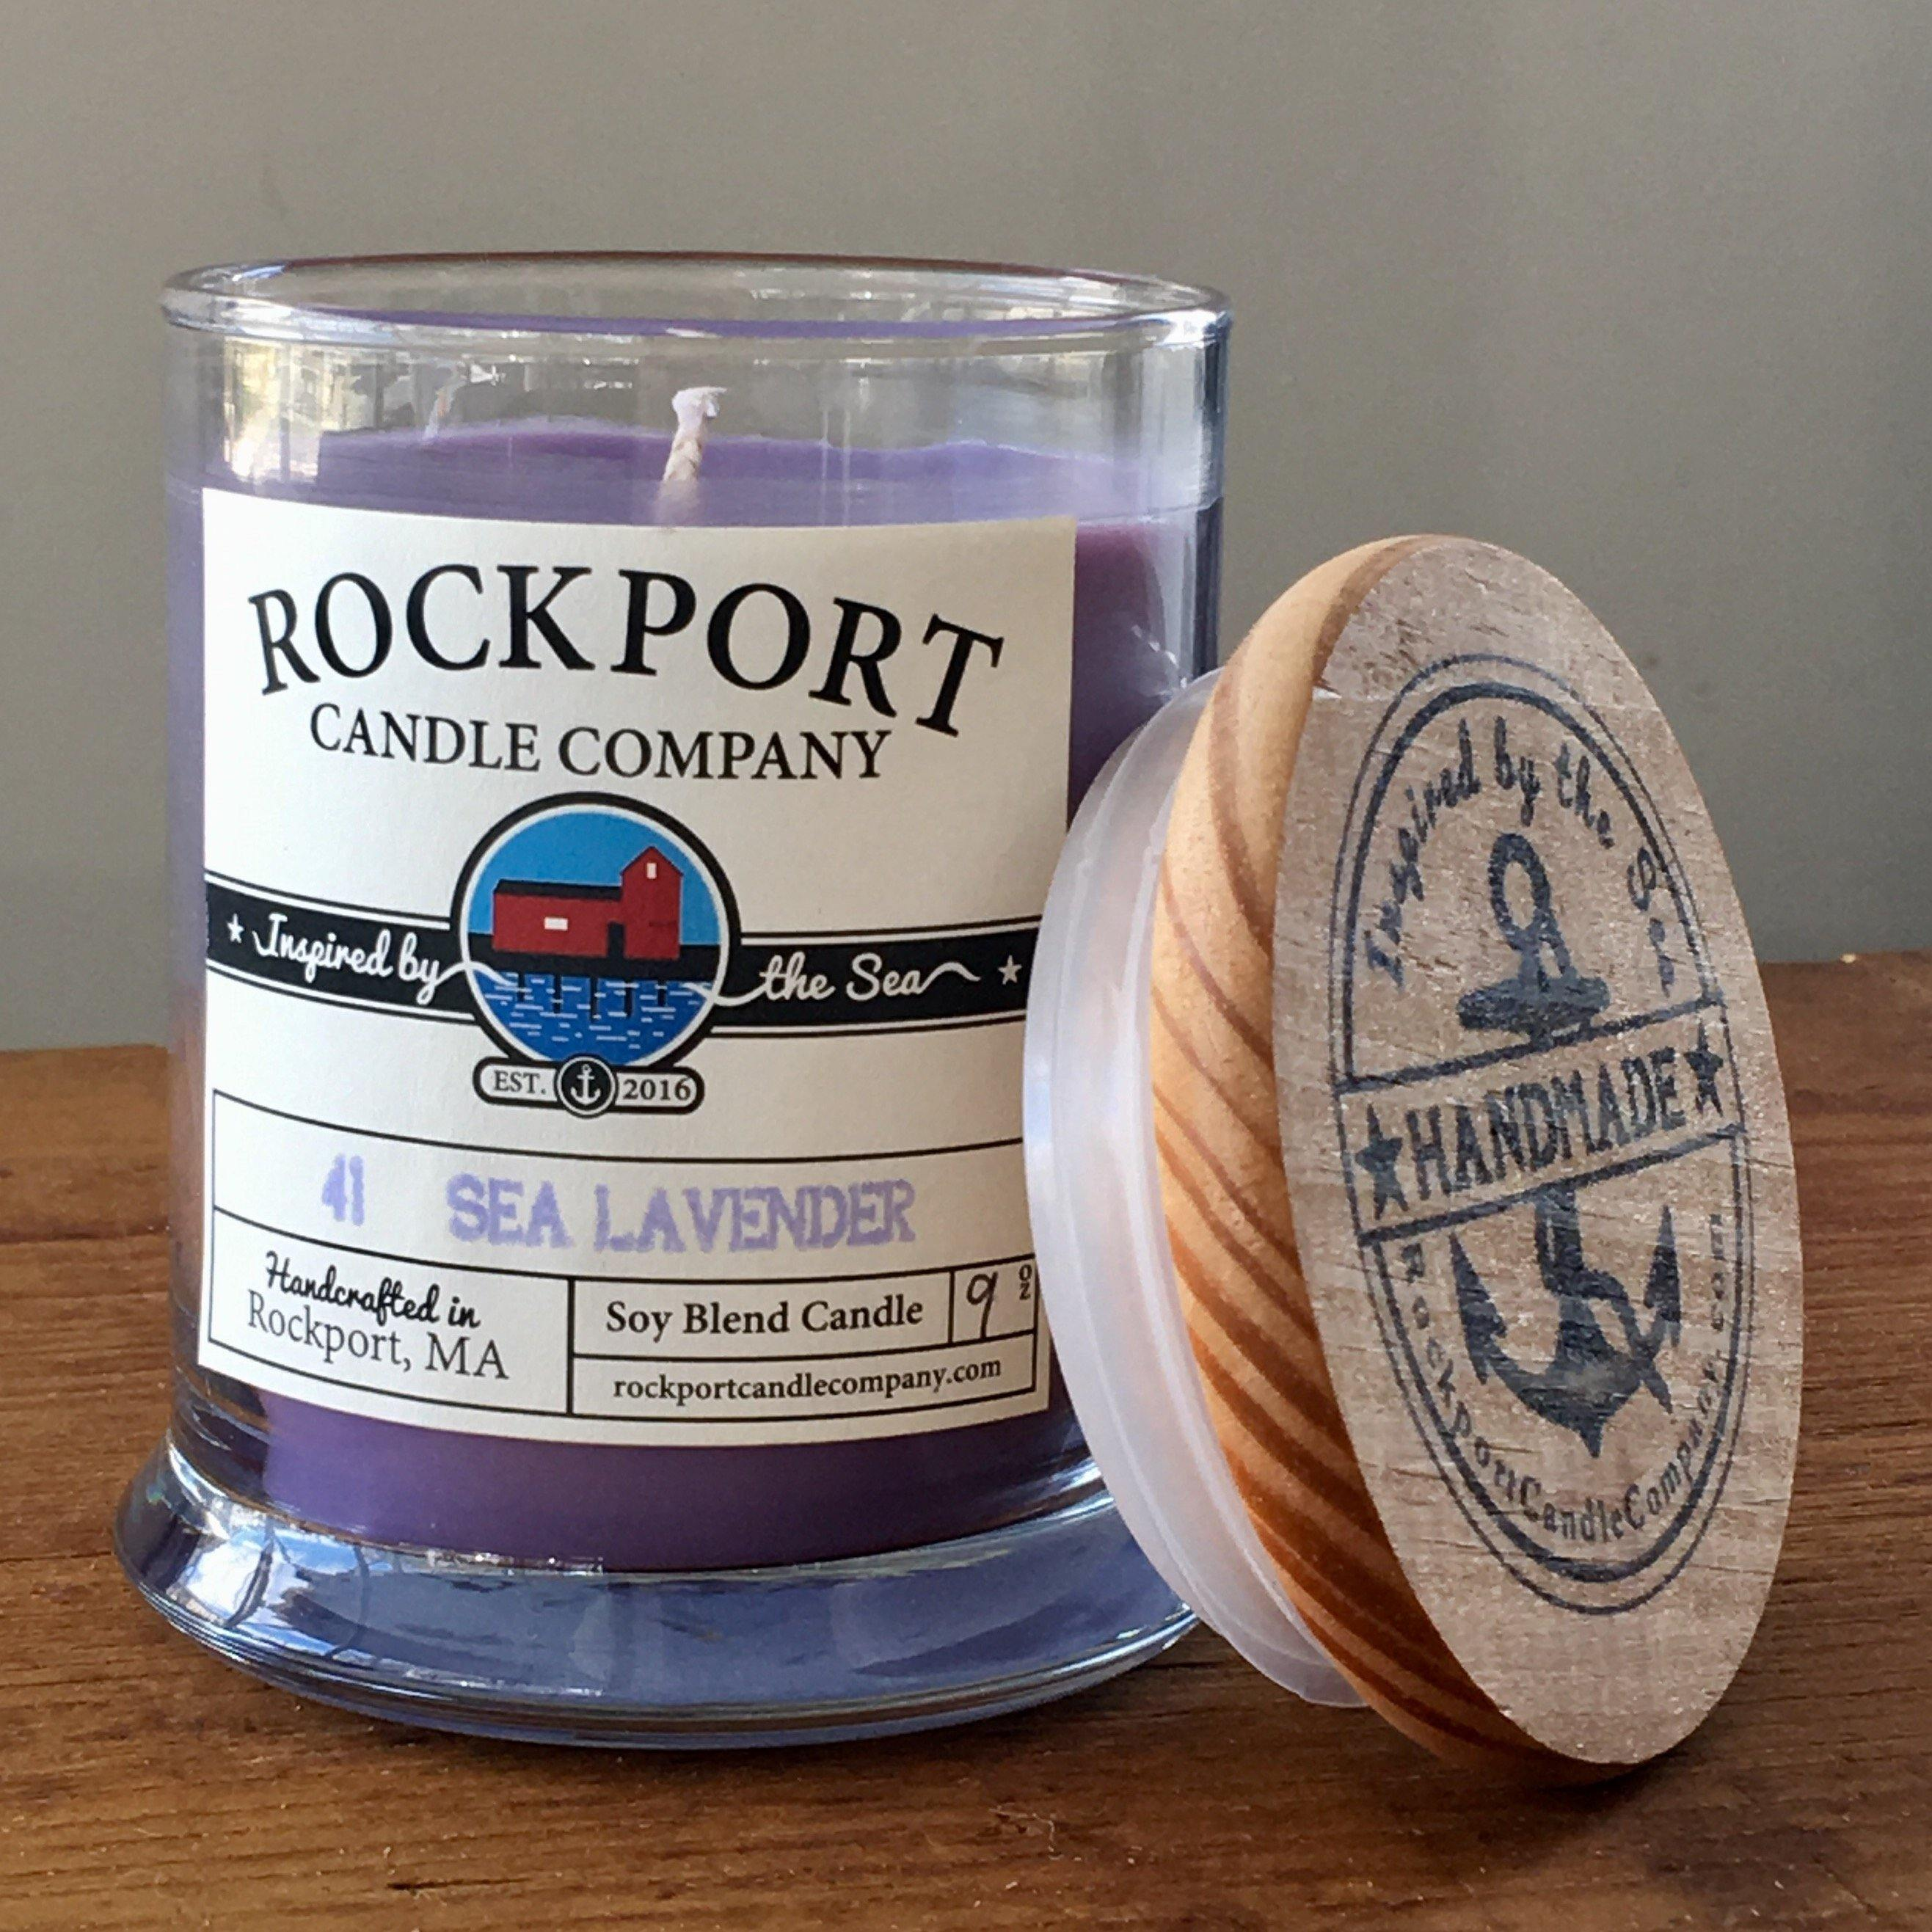 41 Sea Lavender Candle Rockport Candle Company